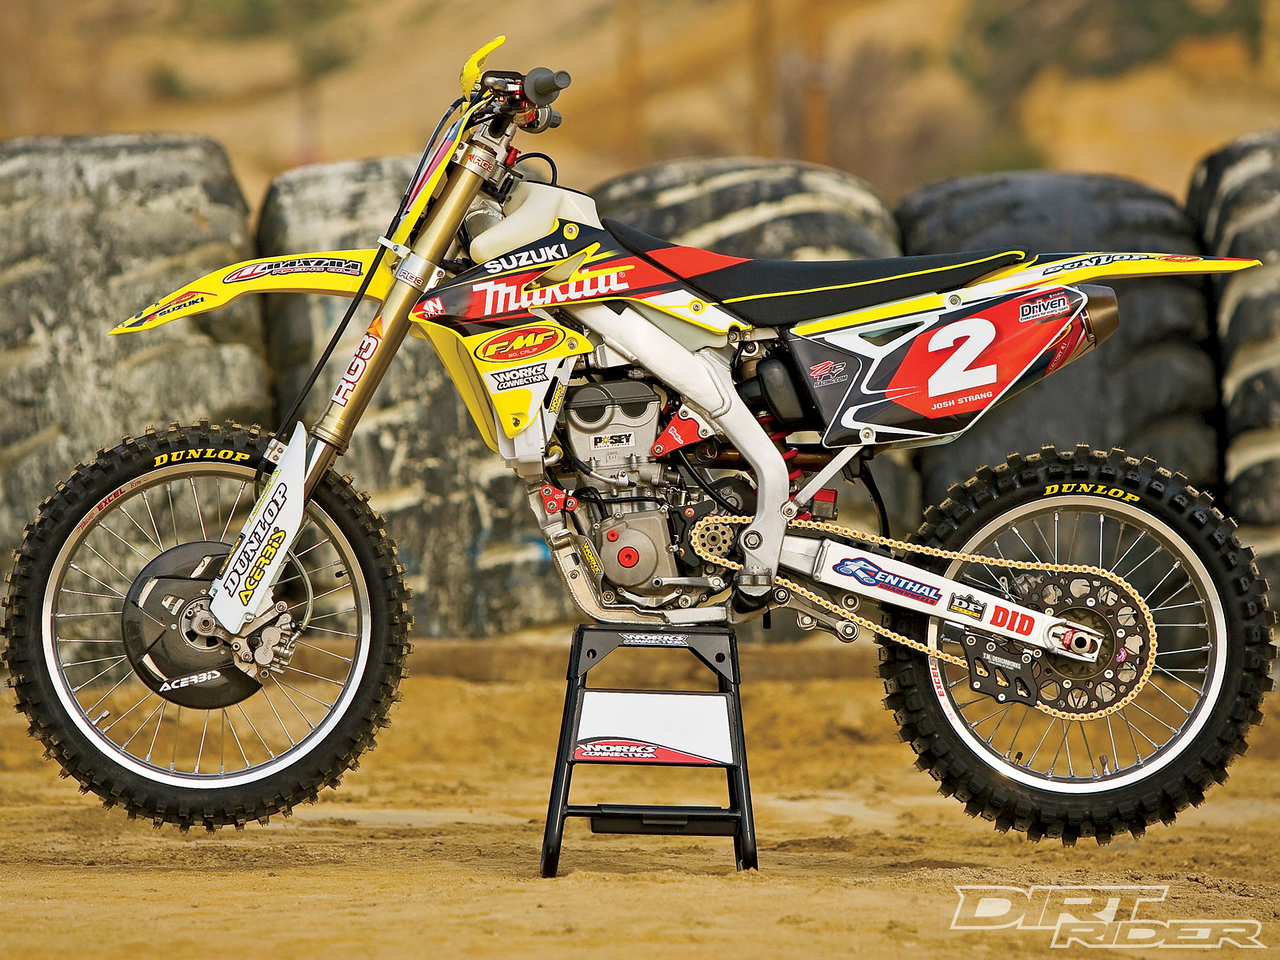 141_1006_01_z 2010_factory_off_road_race_bikes FMF_bike_side_view